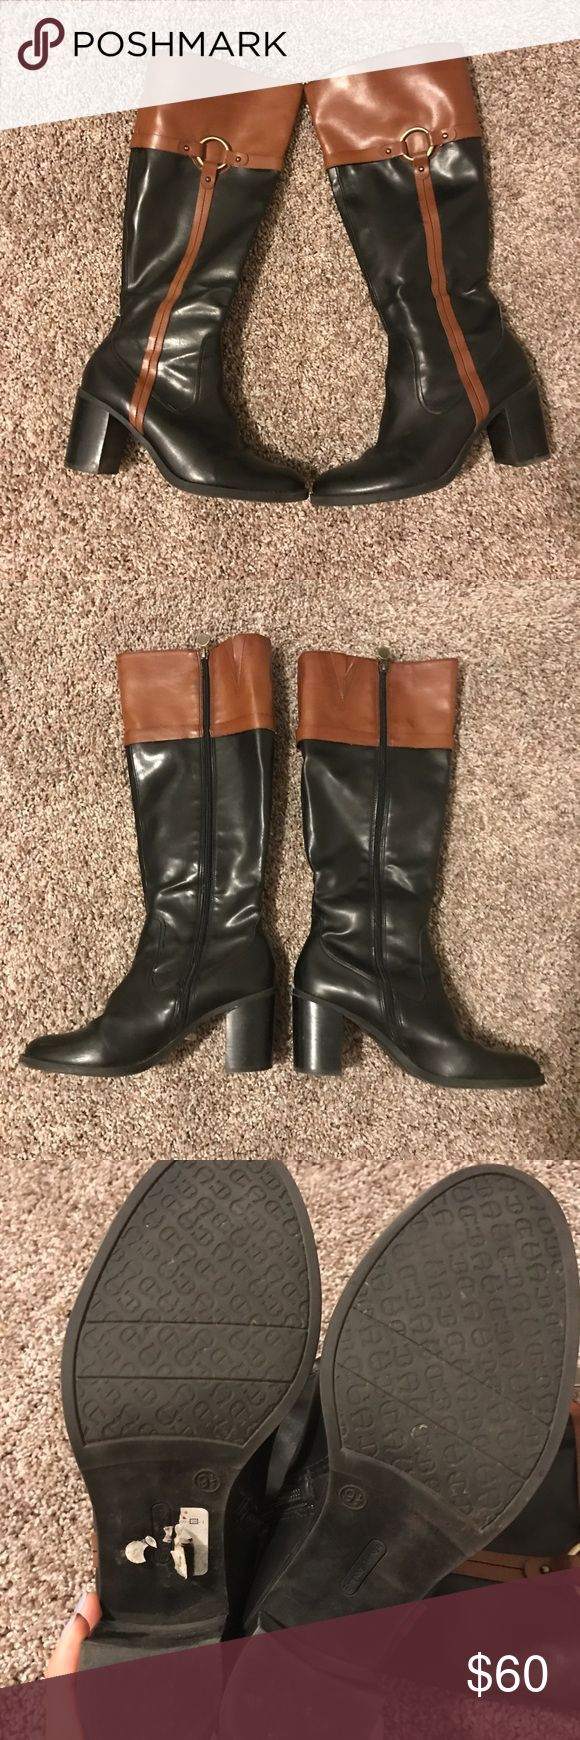 Etienne Aigner Two-Tone Black Brown Heeled Boots Riding Boot style. Block heel. Women's size 9.5. Lightly worn. Etienne Aigner Shoes Heeled Boots